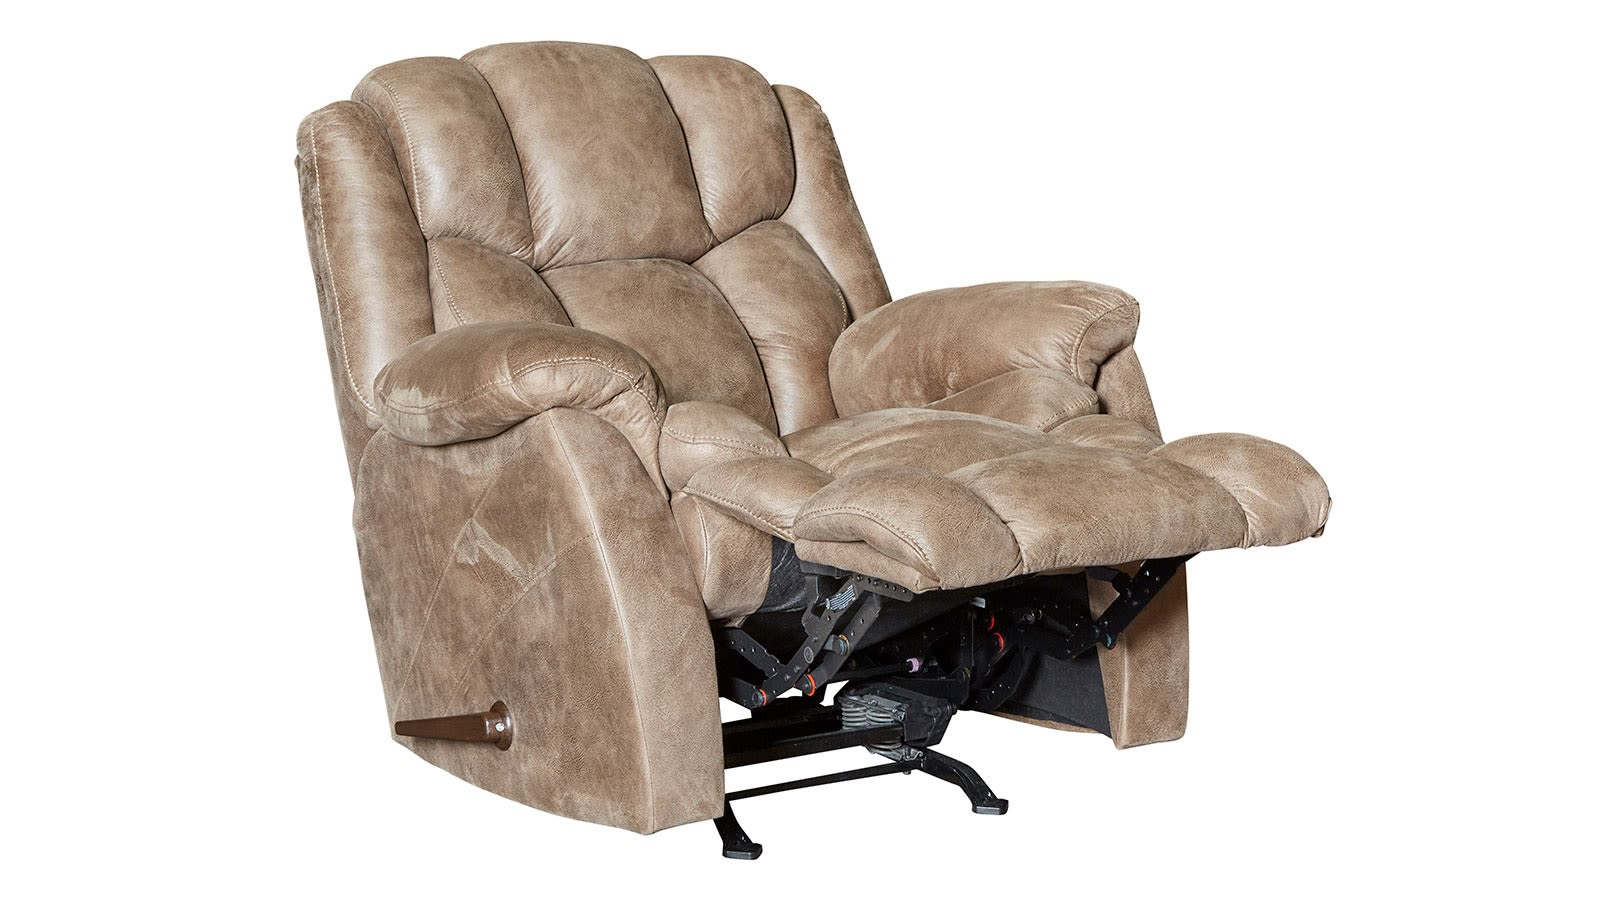 Roadrunner Butte Stone Rocker Recliner, , hi-res